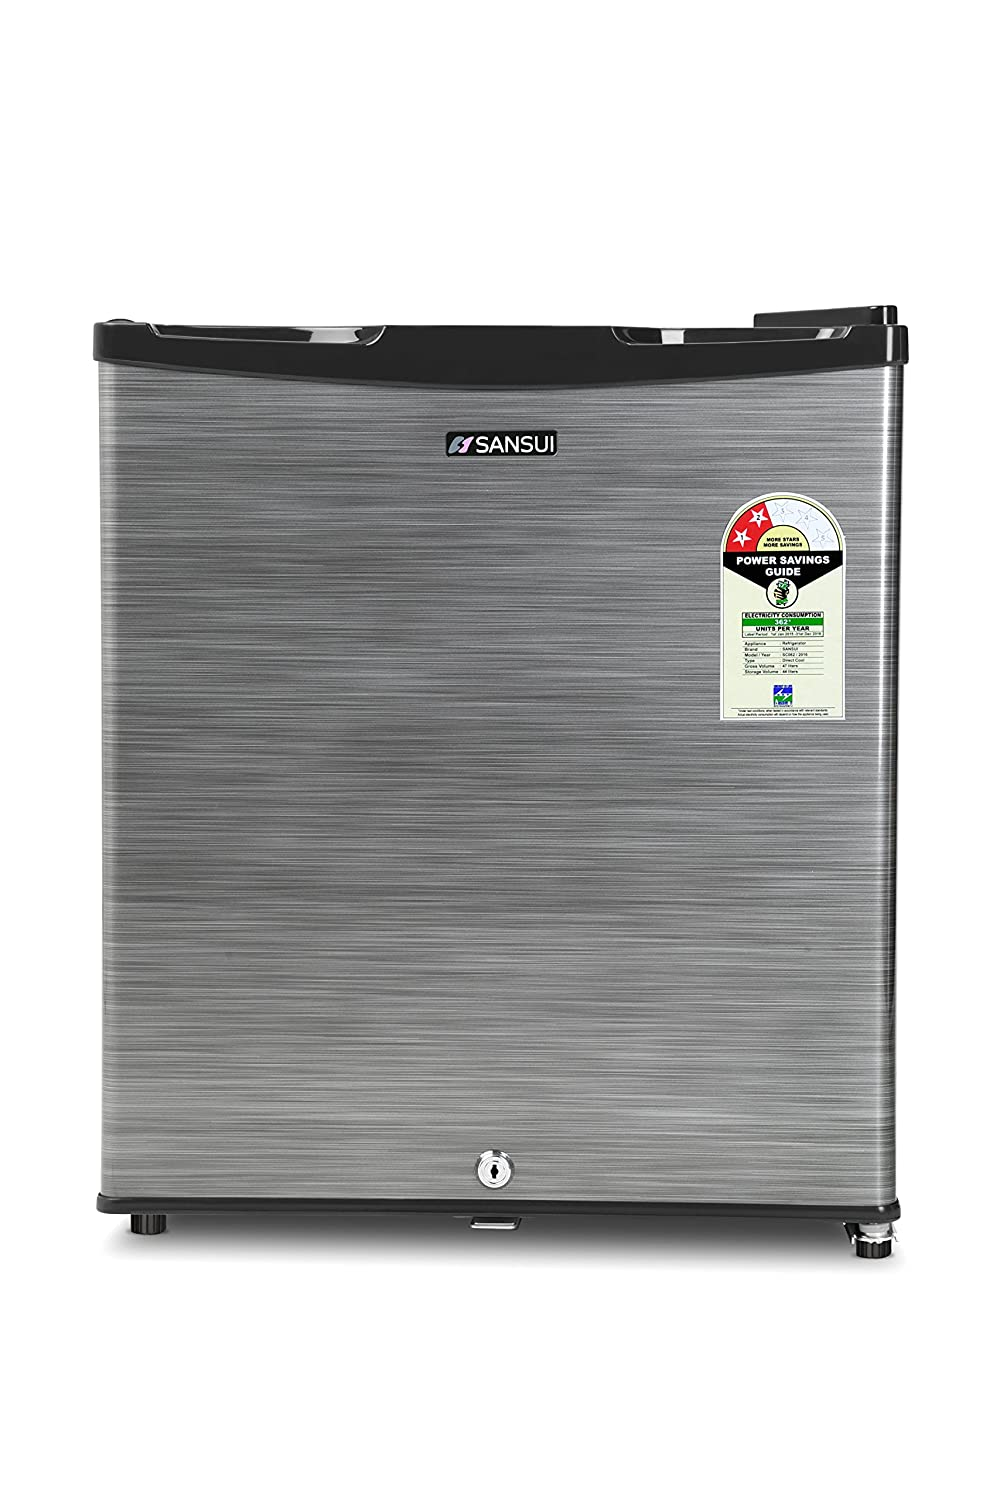 Sansui 50 L 2 Star Direct Cool Single Door Refrigerator Sc062psh Silver Hairline In Home Kitchen